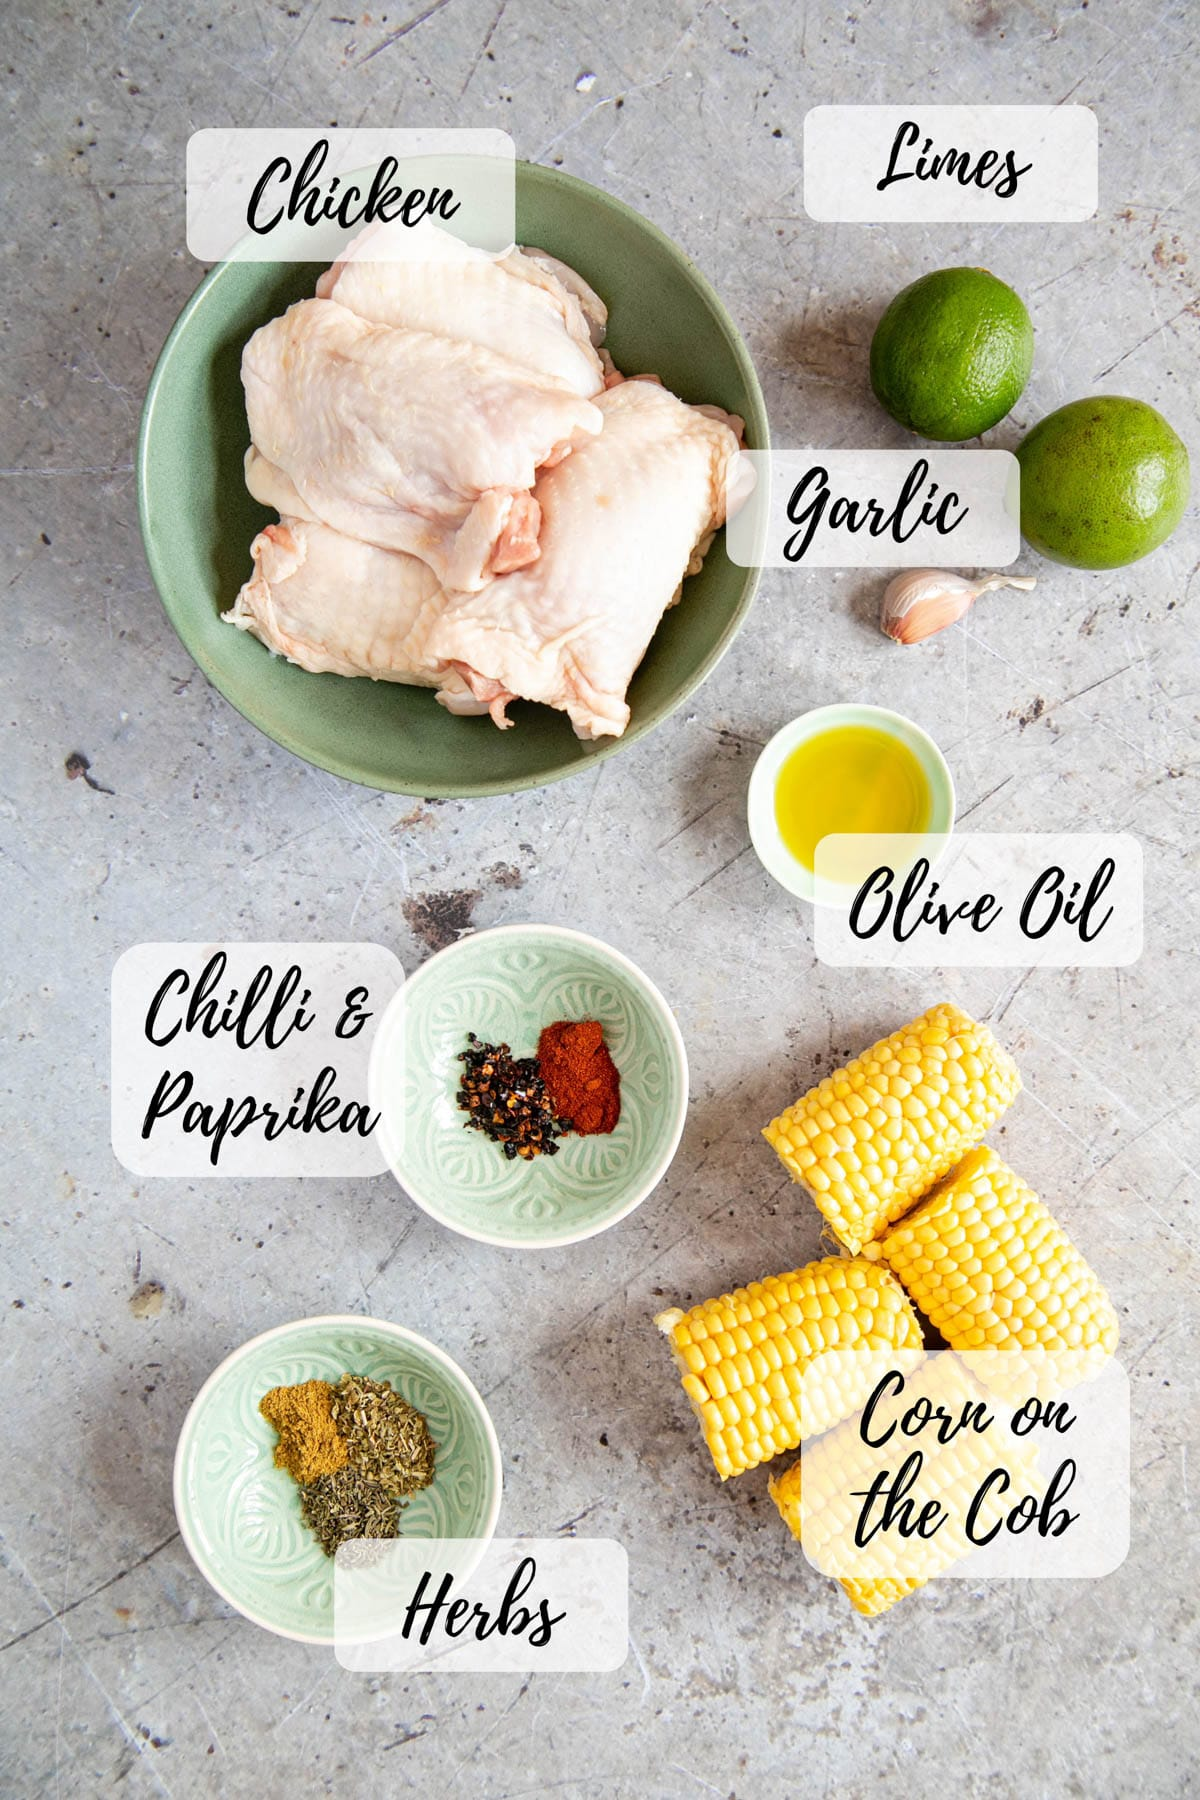 An annotated picture of the ingredients for peri peri chicken: chicken thighs, limes, garlic, olive oil, chilli flakes, paprika, corn on the cob, and herbs.